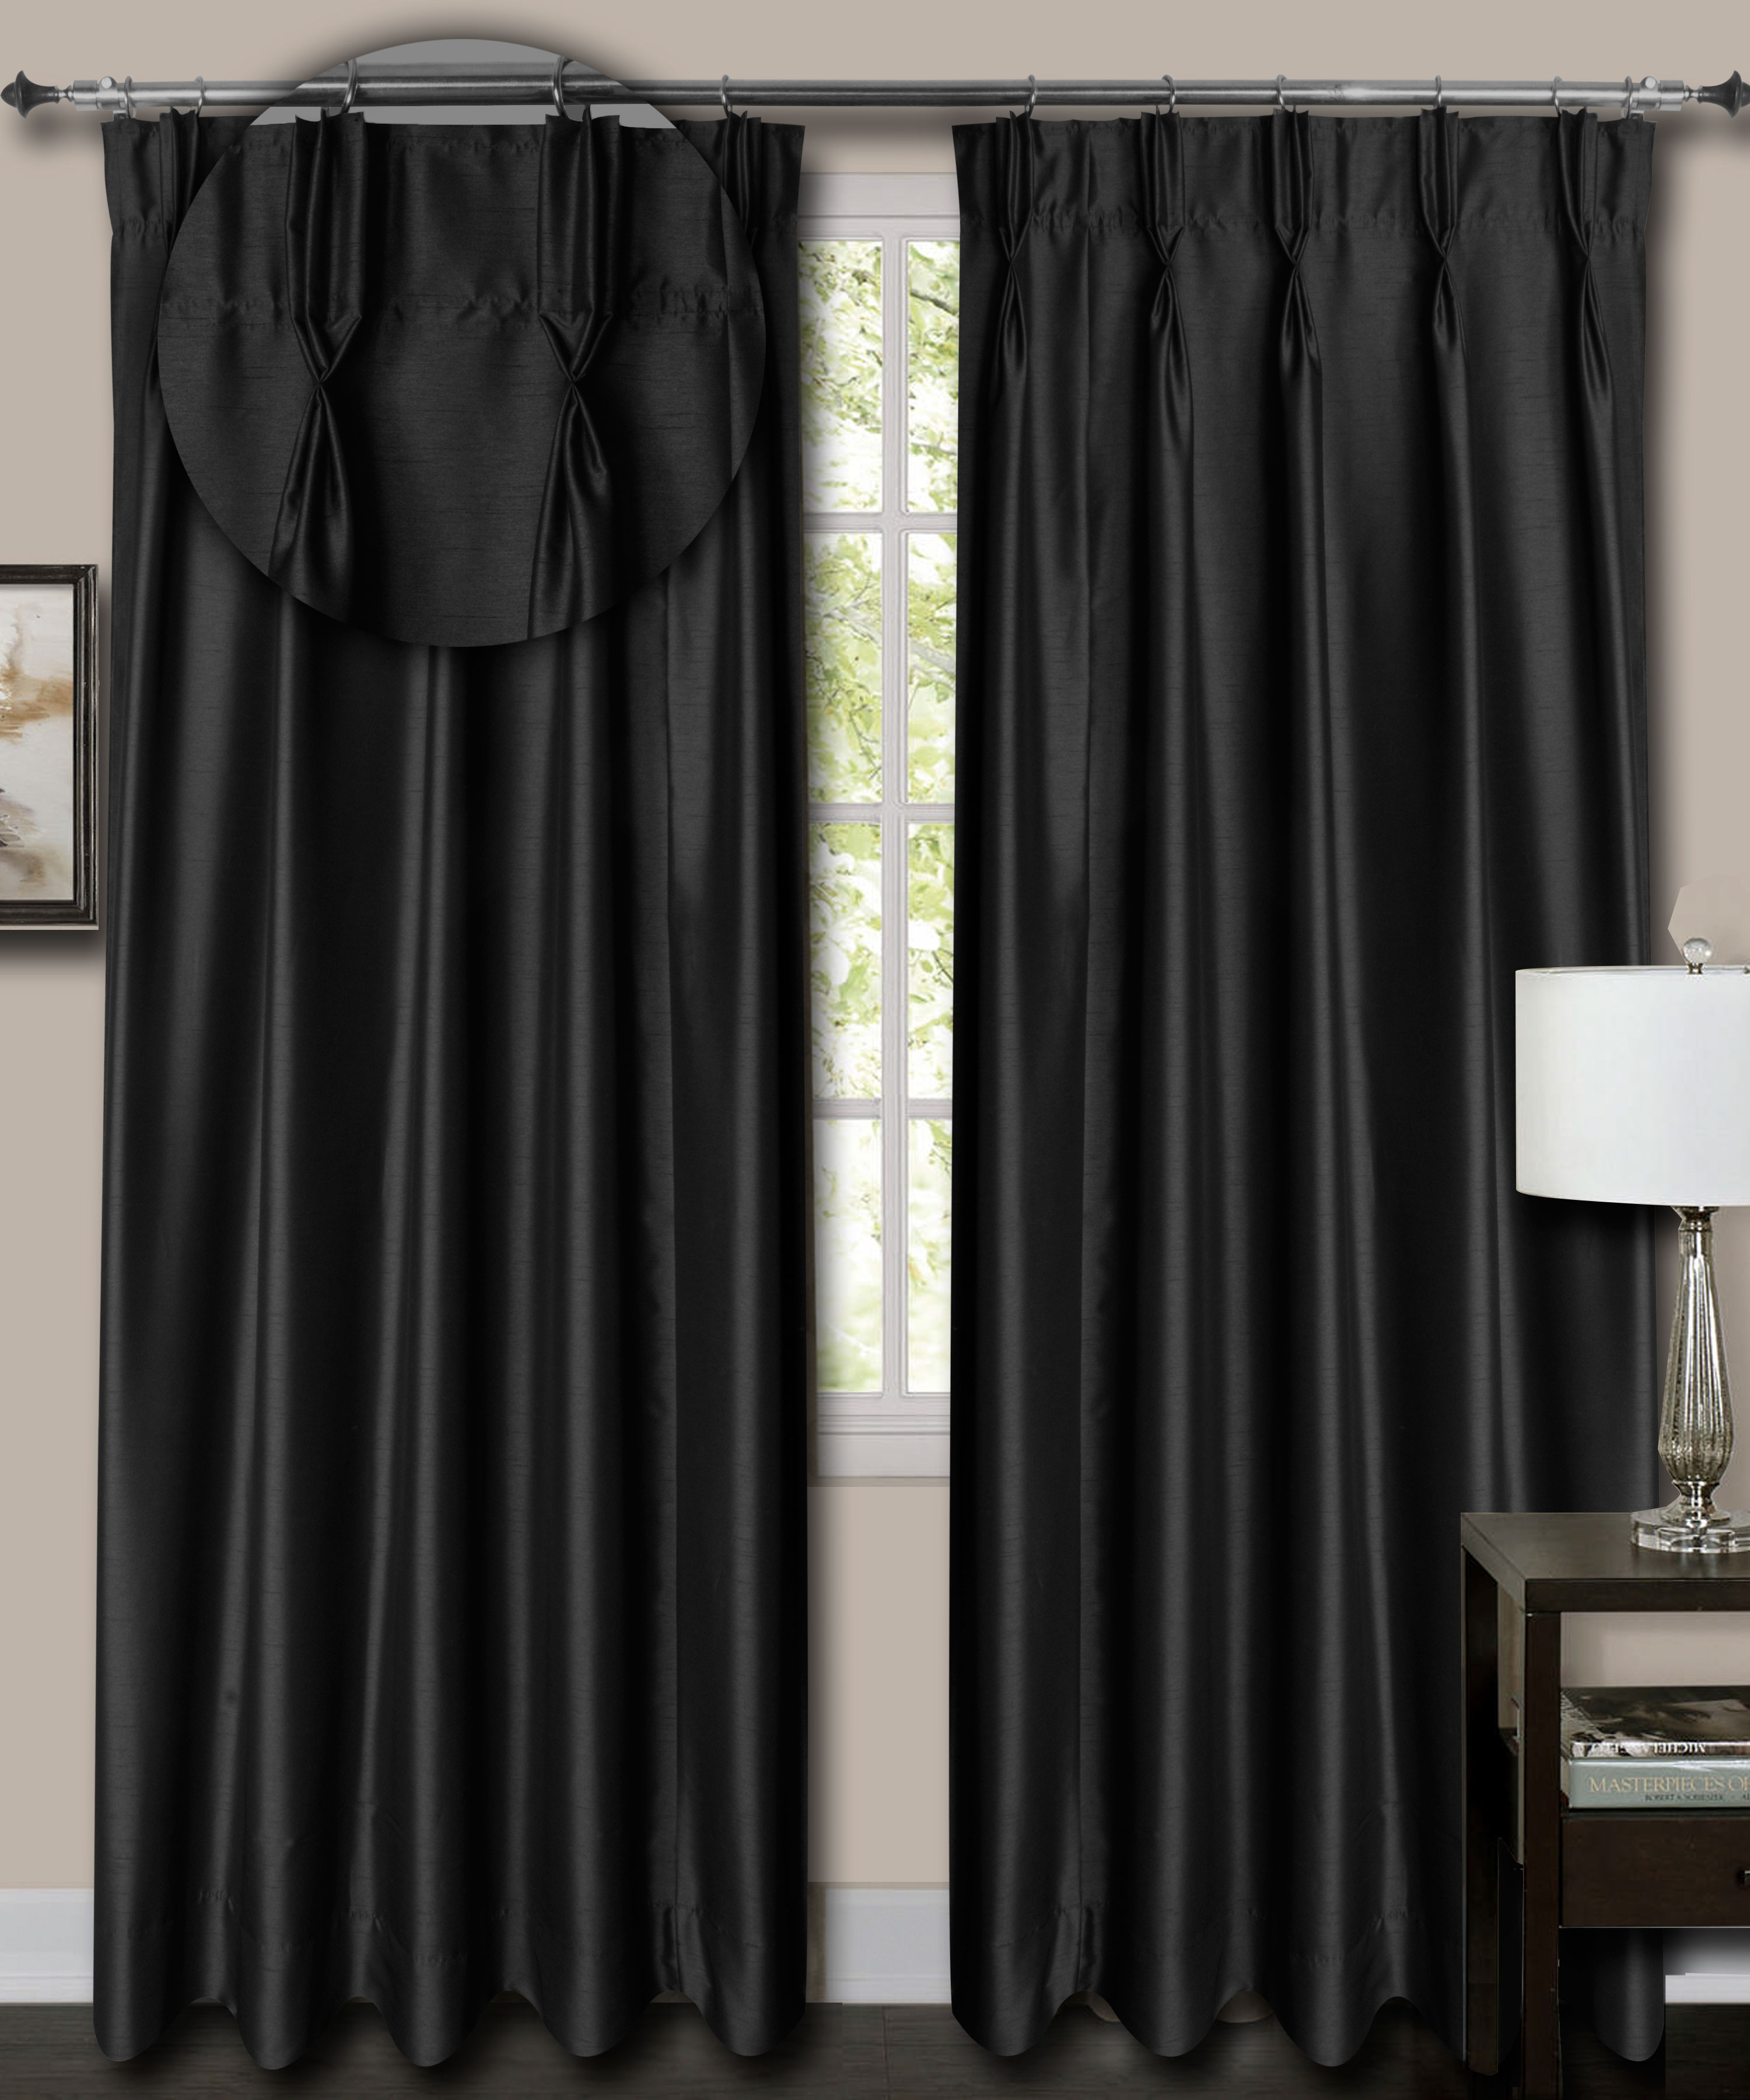 "French Pleat Top Black Faux Silk Dupioni Curtains. (52"" Wide,11 Feet Long,Thick Lining)"